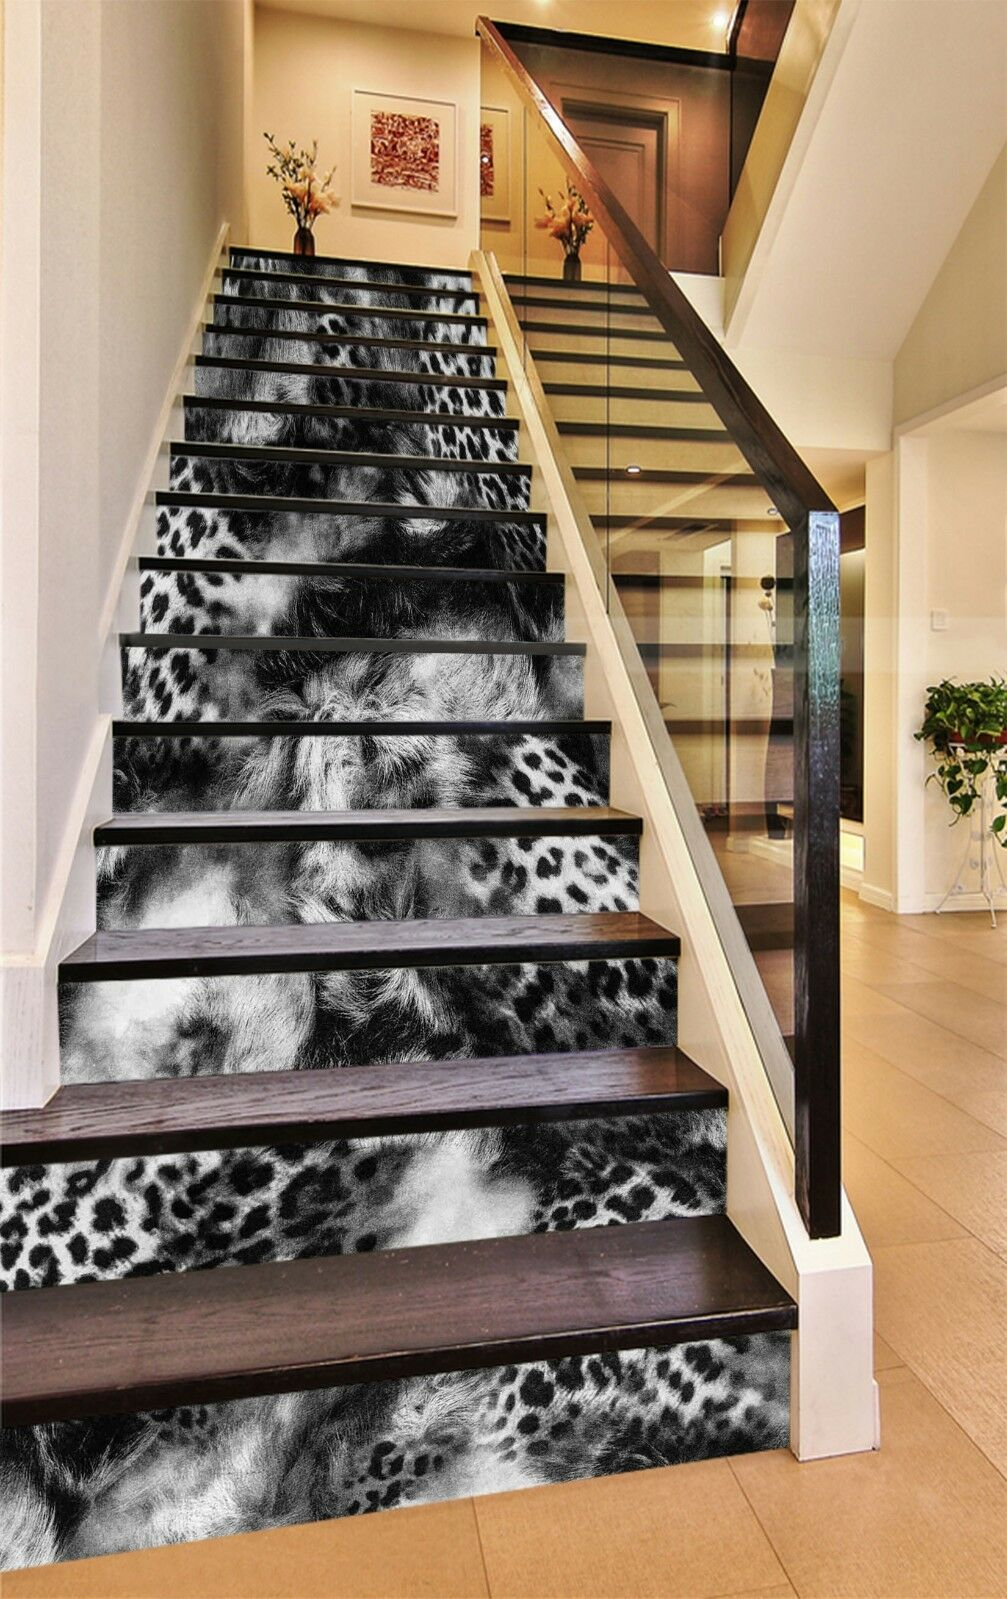 3D Leopard 4 Stair Risers Decoration Photo Mural Vinyl Decal Wallpaper UK